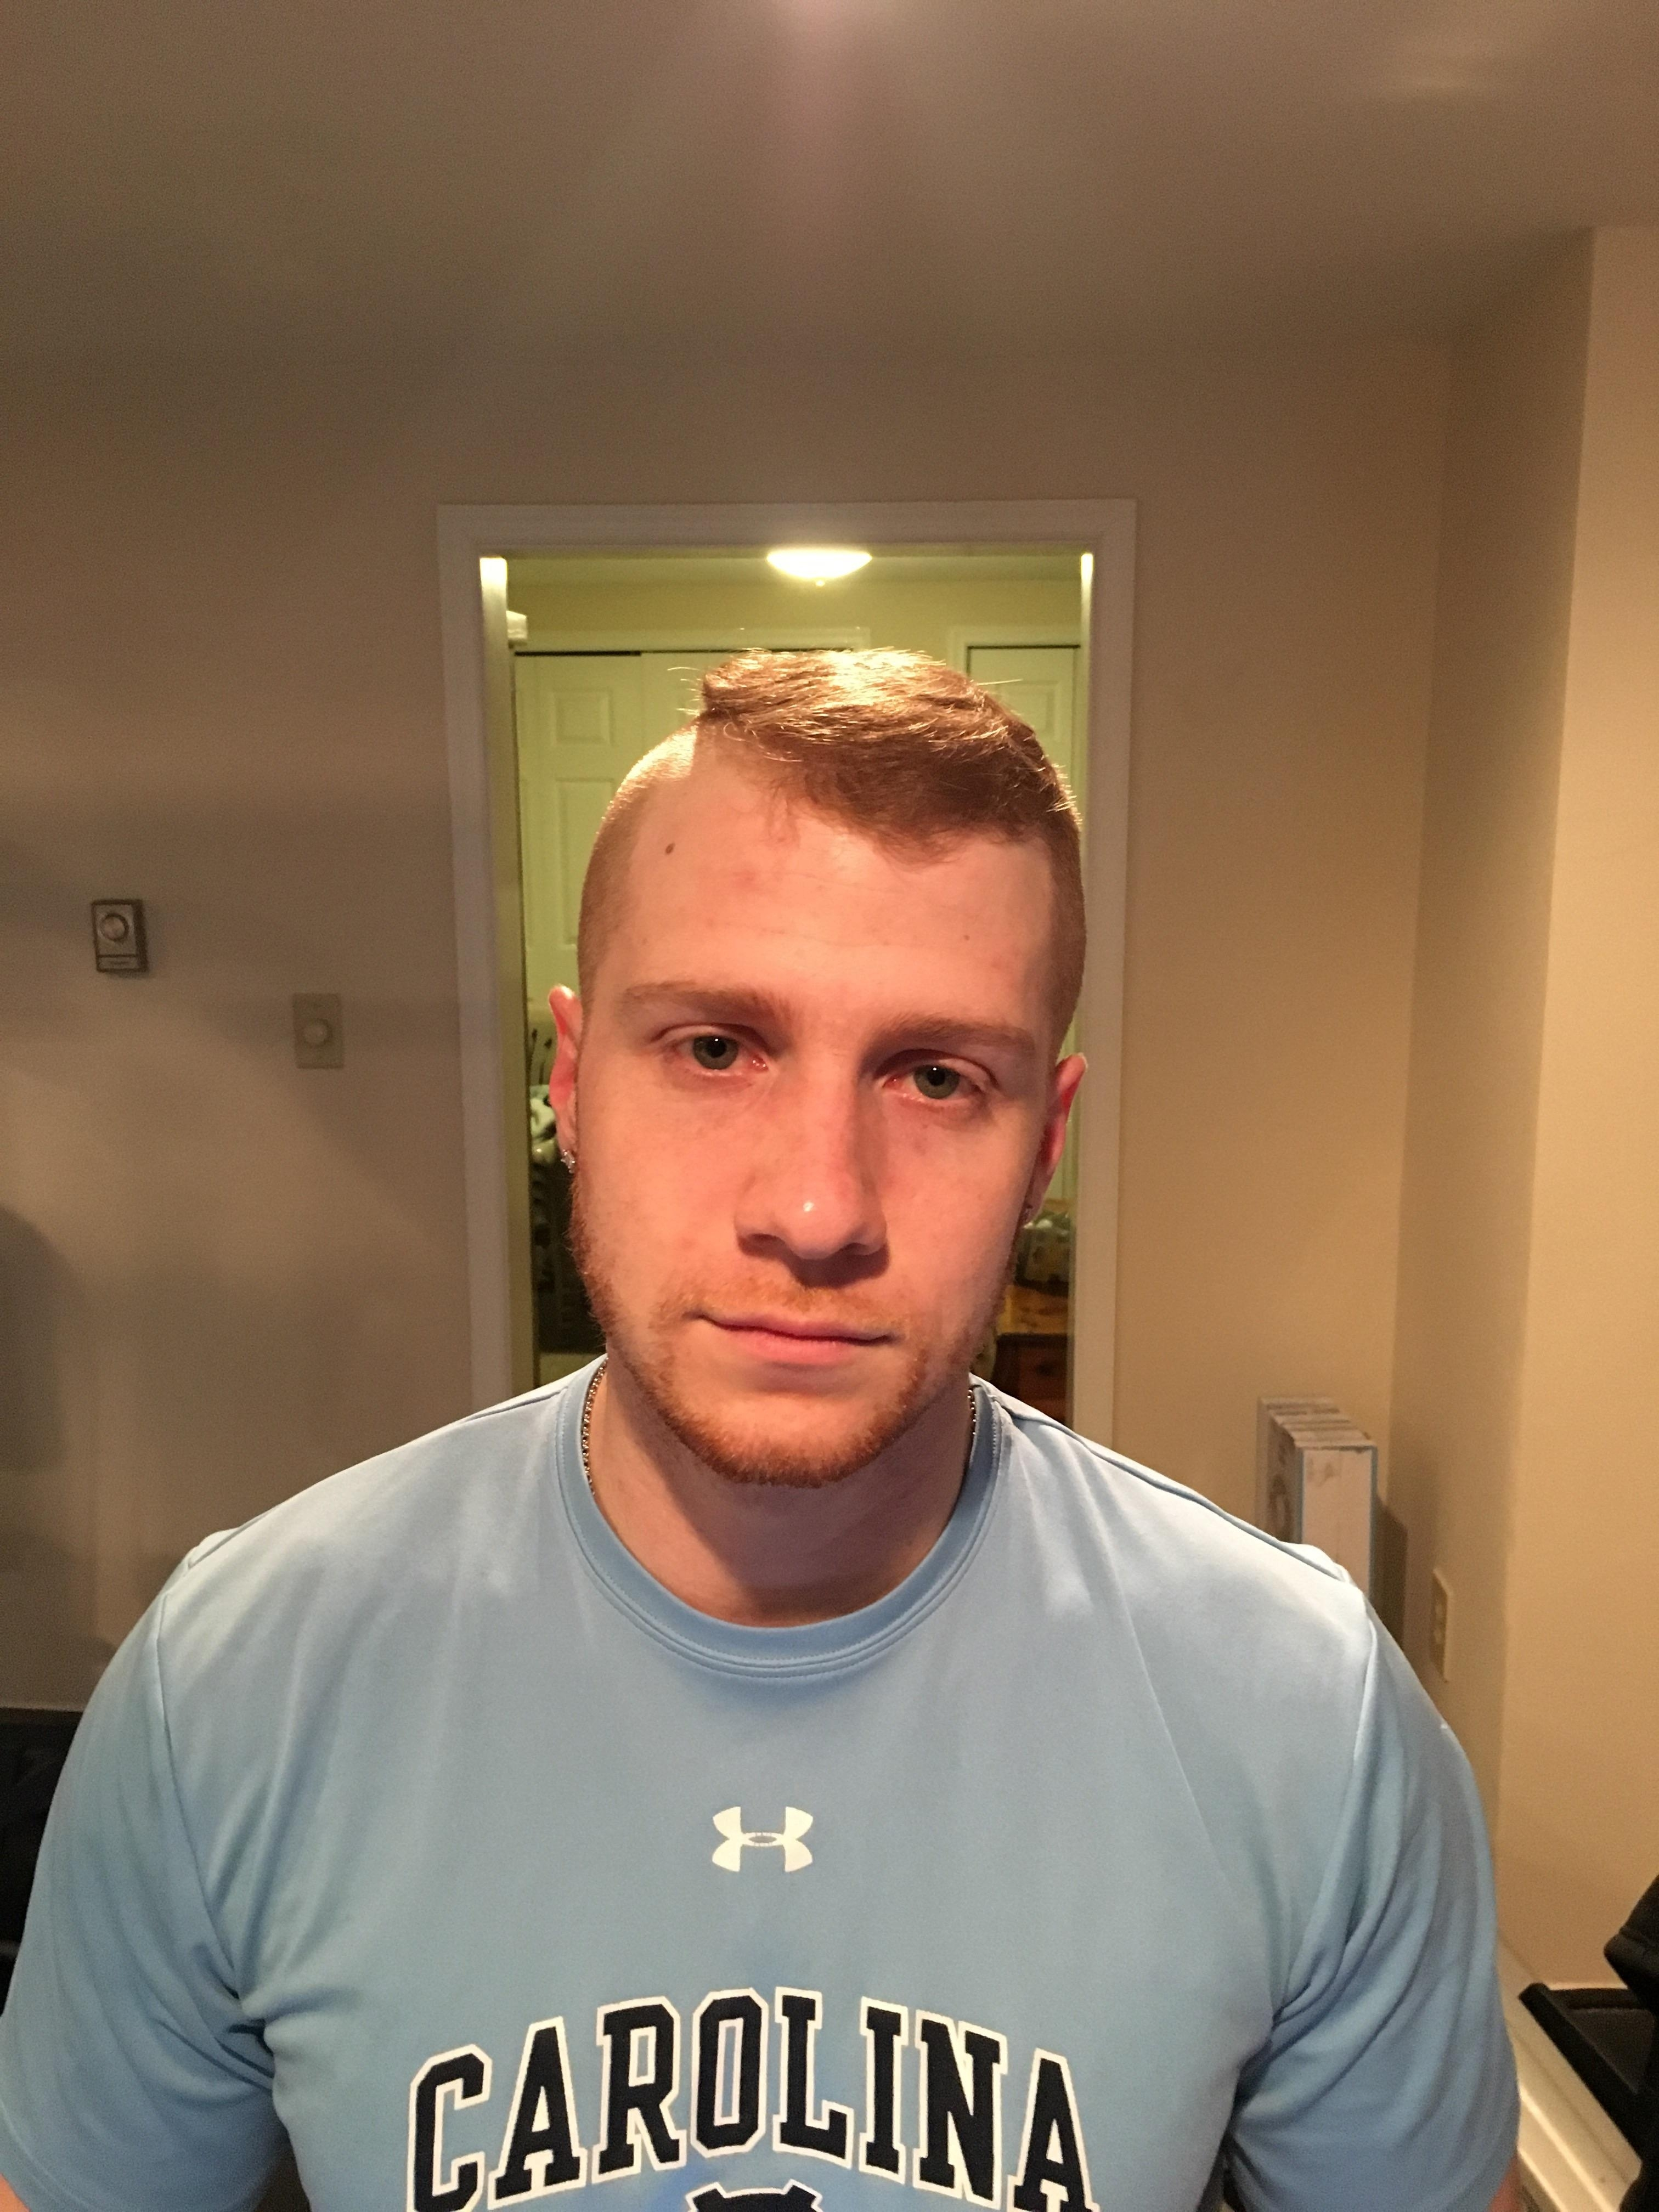 Went To Get A Cheap Haircut. I Gotta Shave My Head Now regarding Haircut For Round Face Reddit